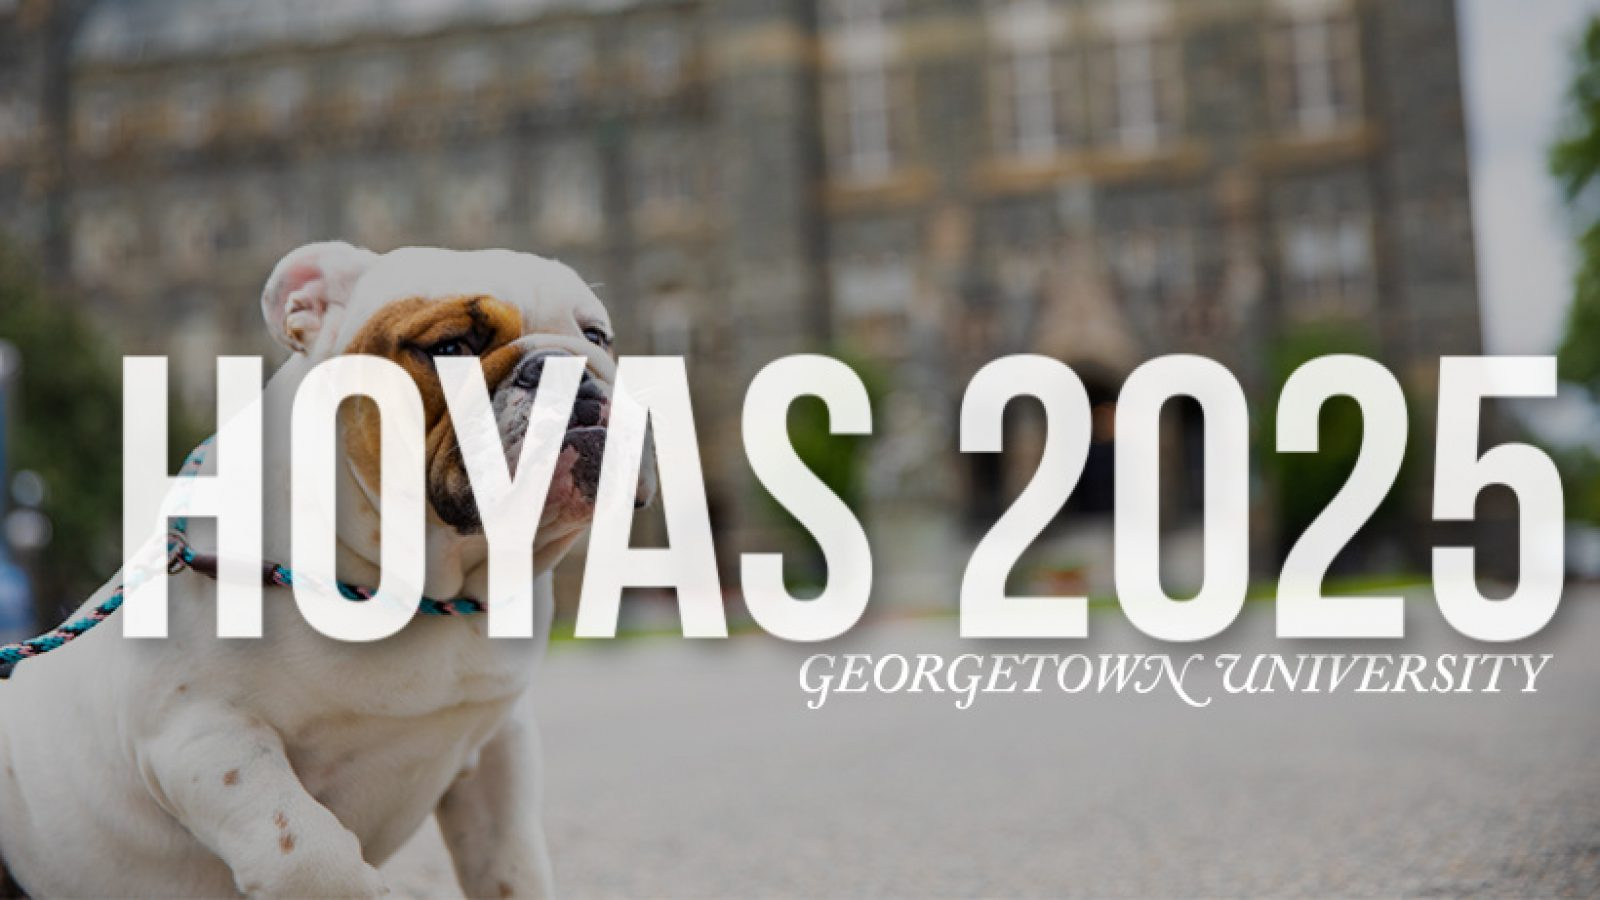 Text: Hoyas 2025 Georgetown University, Image: Jack the Bulldog in front of Healy Hall